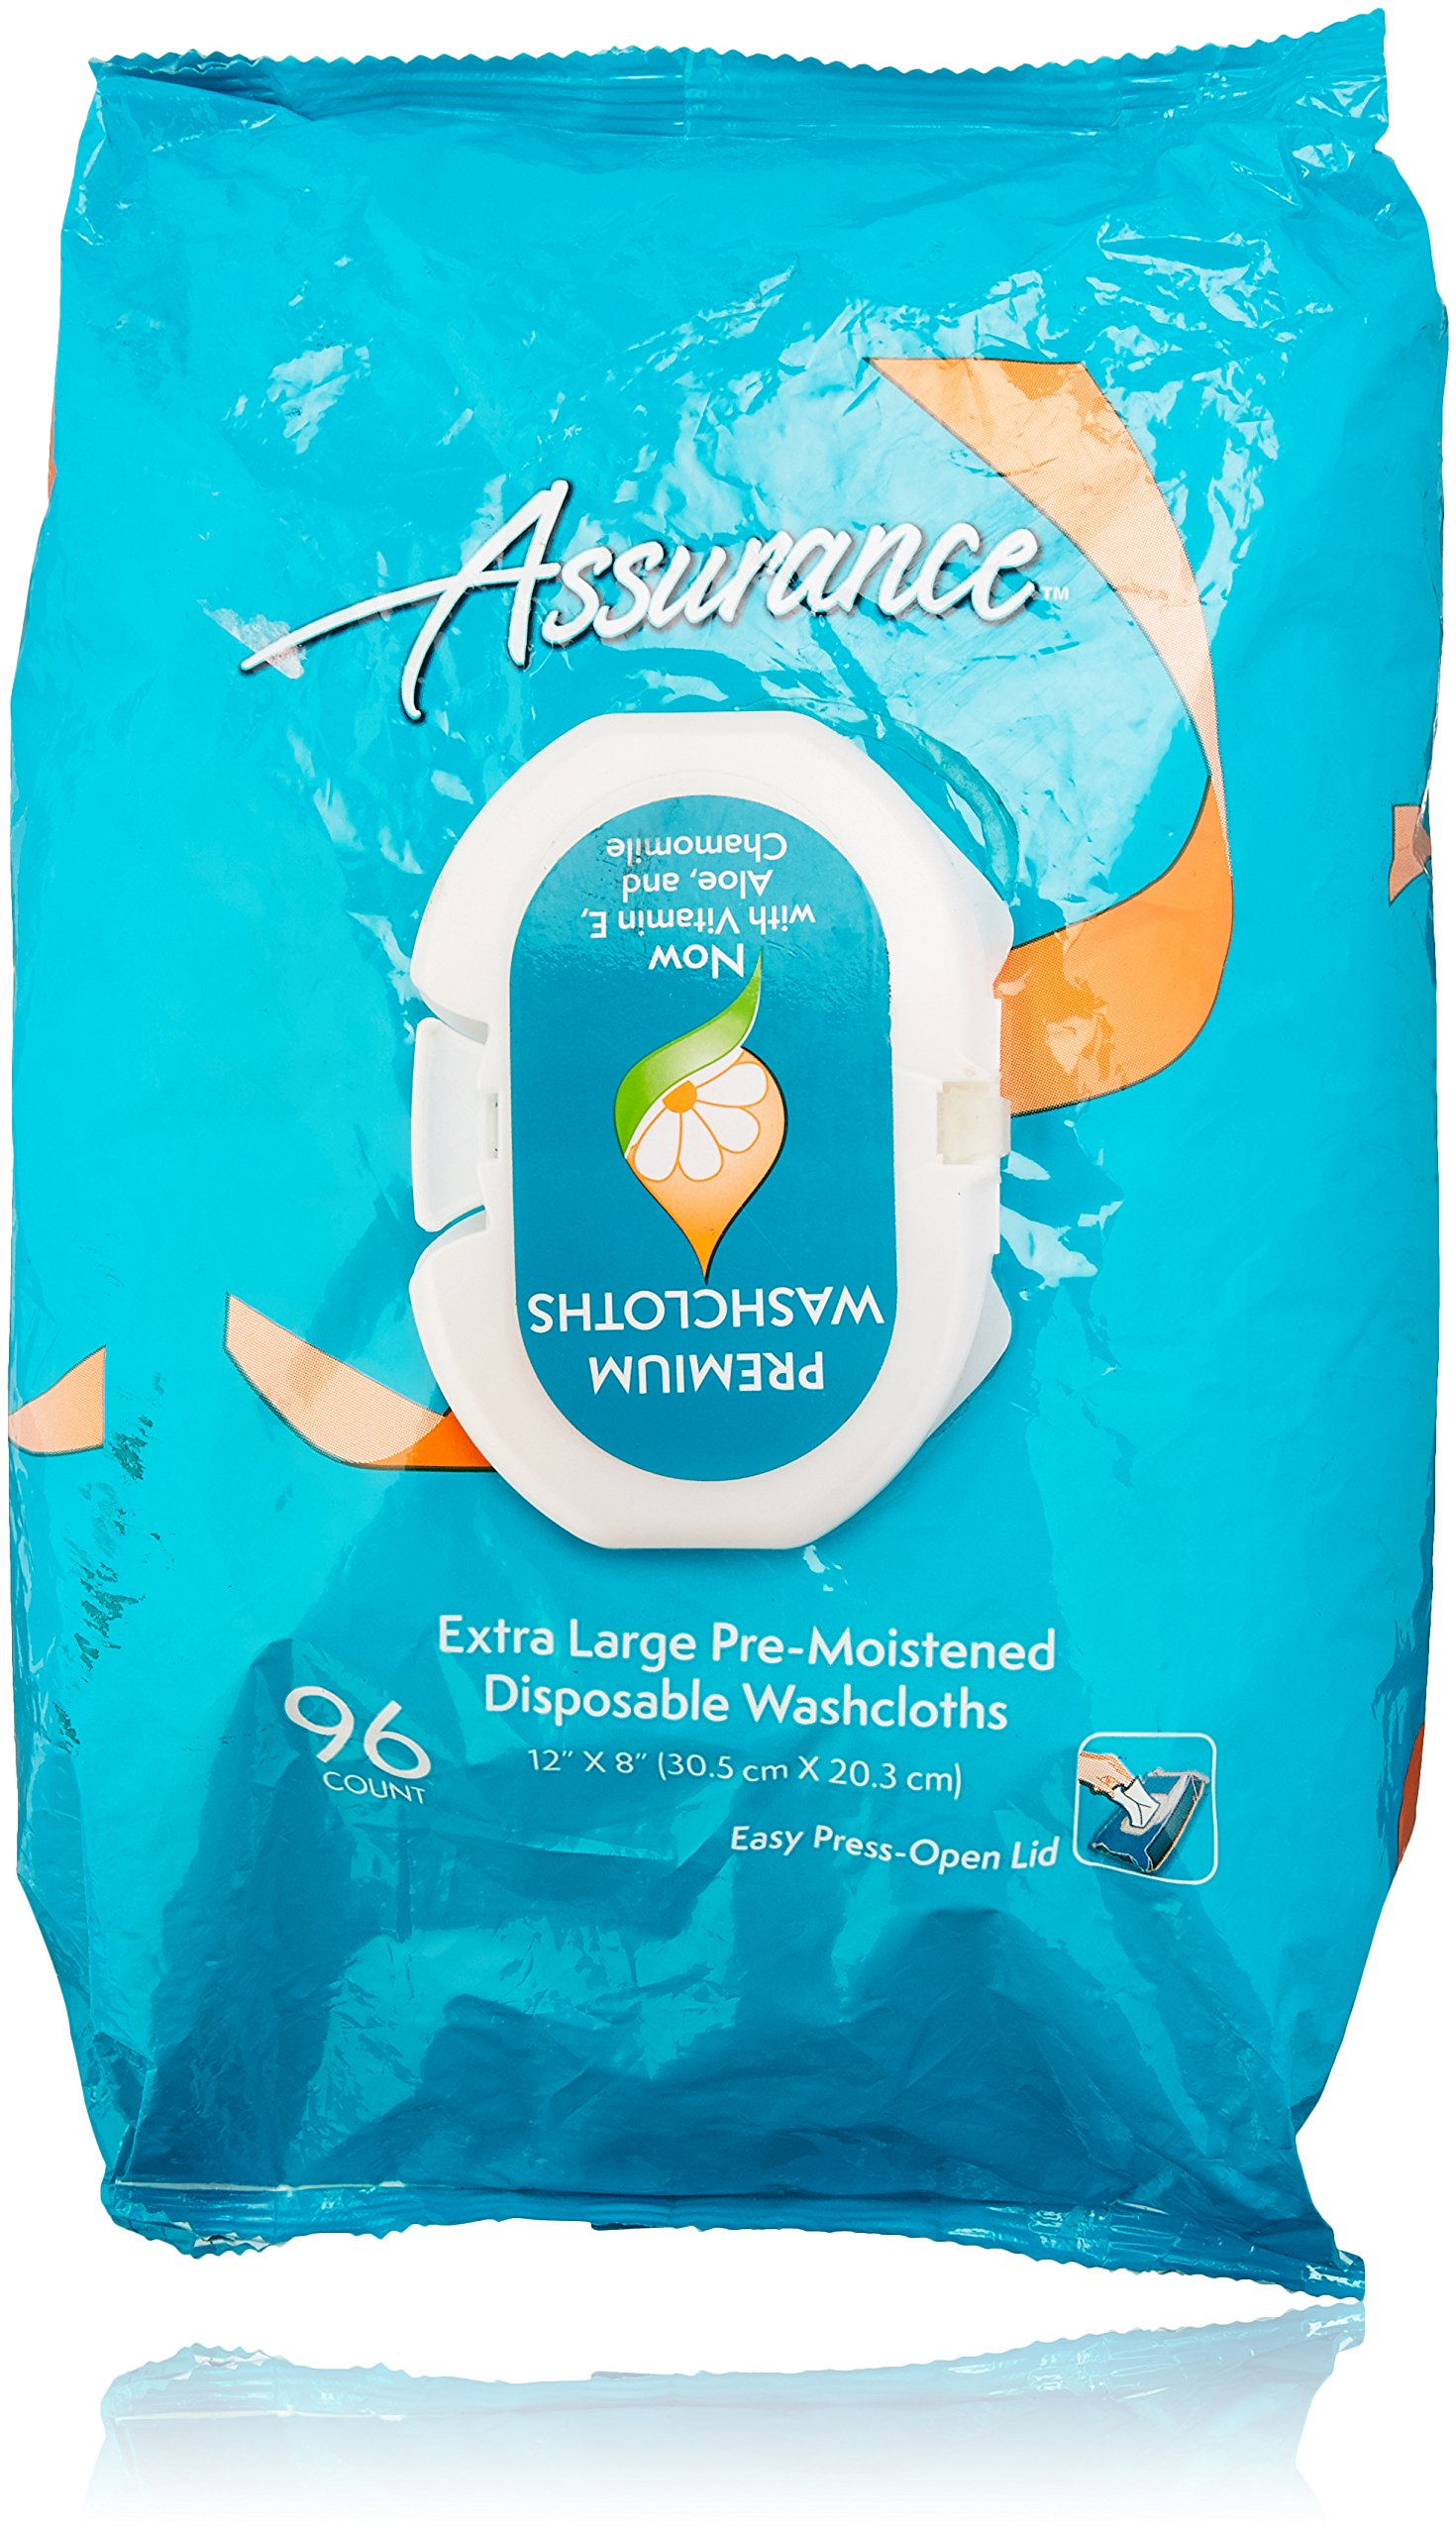 Assurance Pre-Moistened Extra Large Disposable Washcloths, 96ct